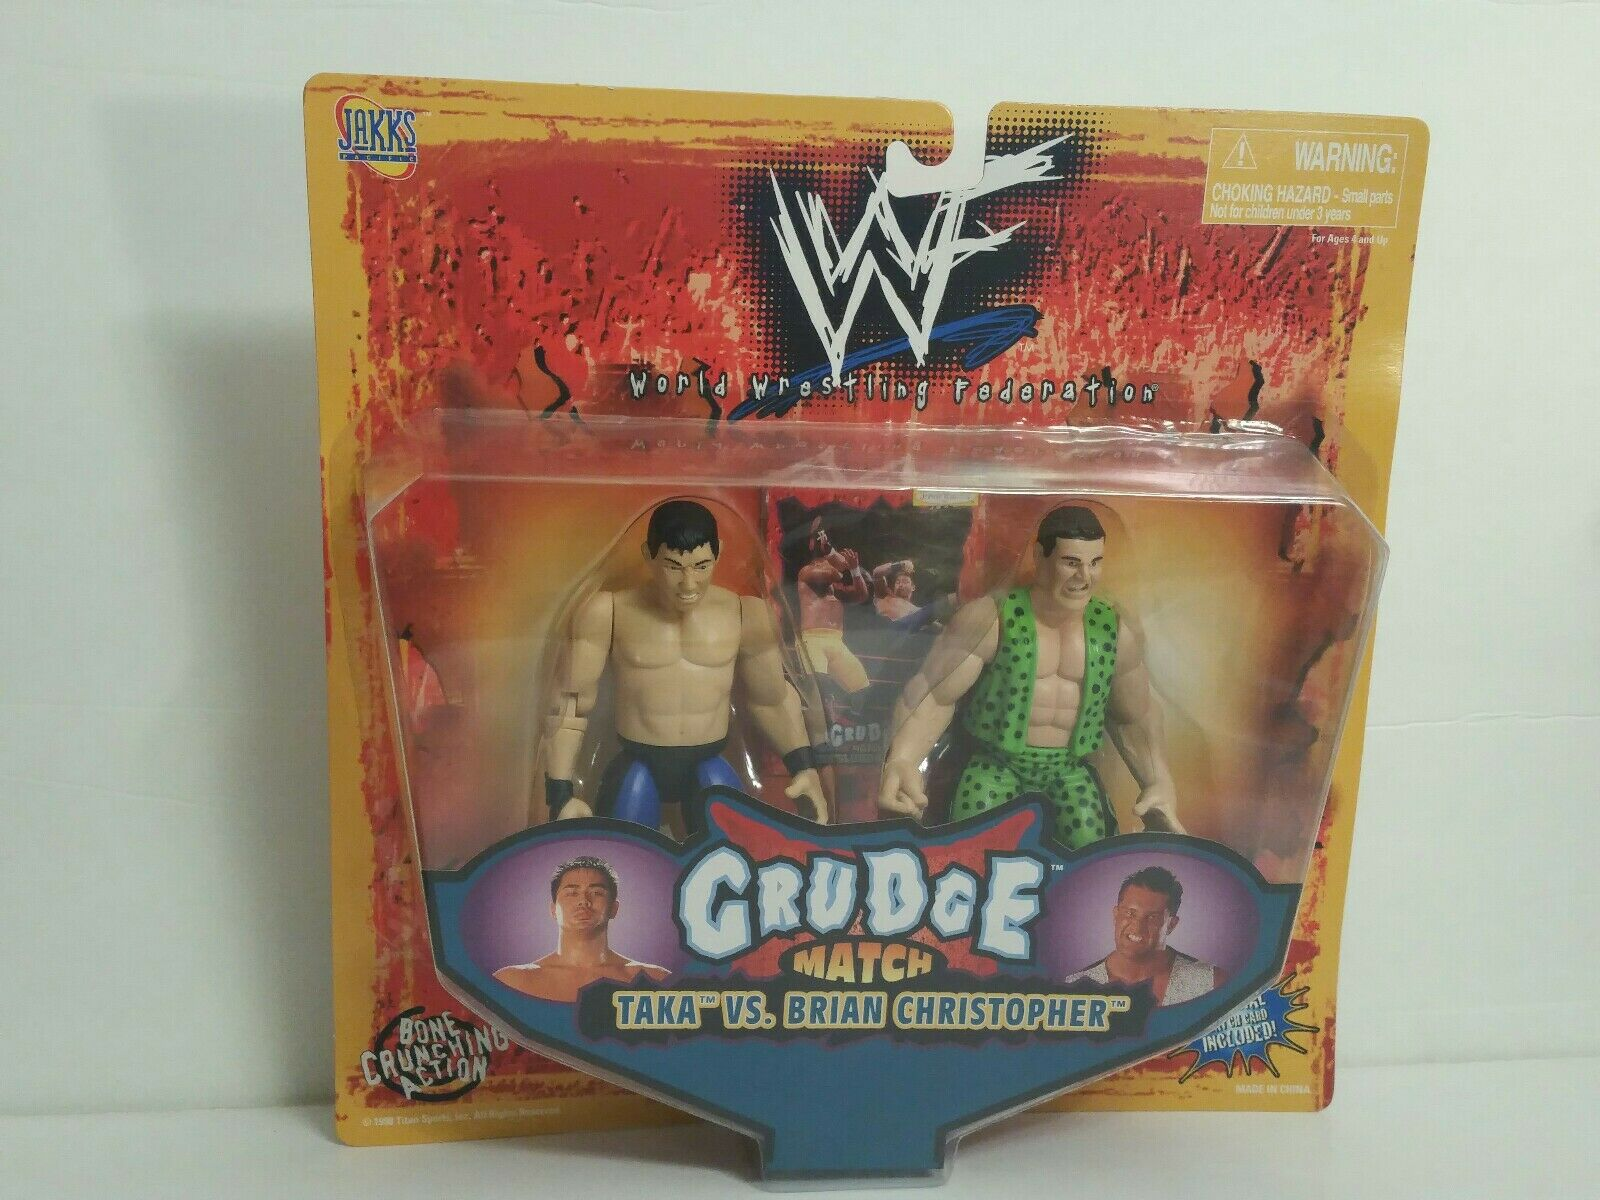 WWF GRUDGE MATCH TAKA VS. BRIAN CHRISTOPHER ACTION FIGURES(056)